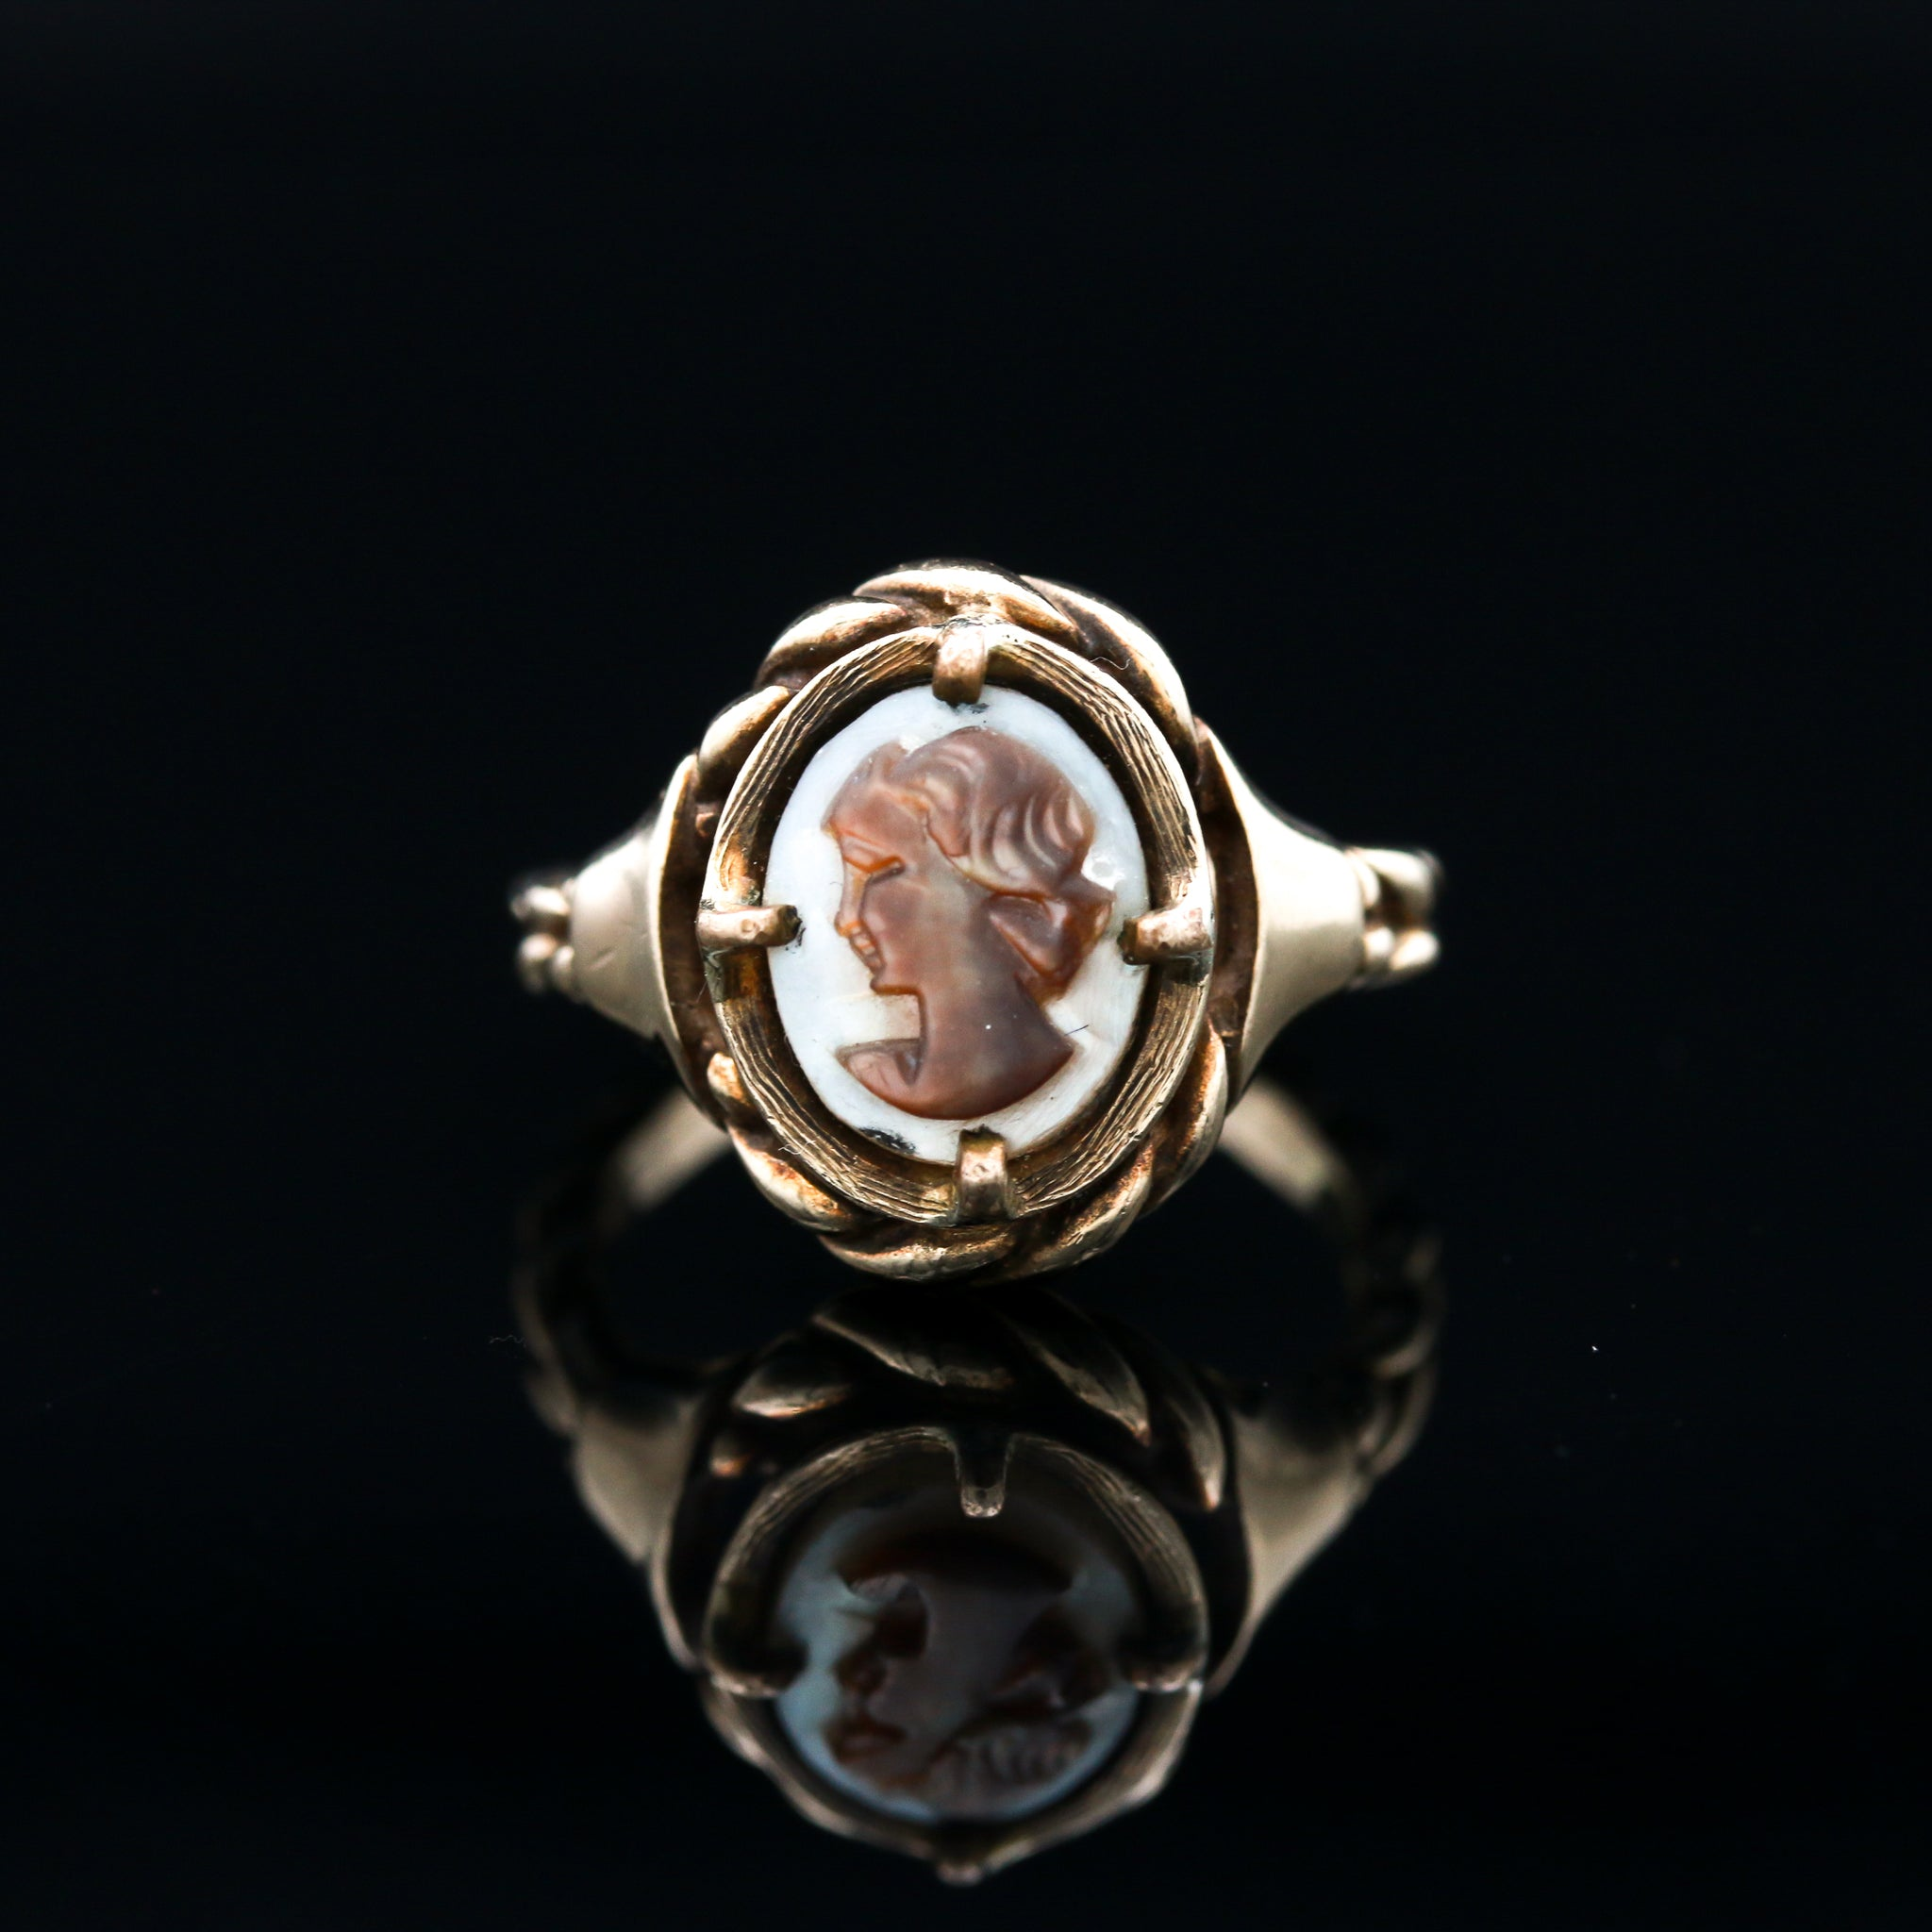 Antique Carved Mother of Pearl Cameo Ring - Sindur